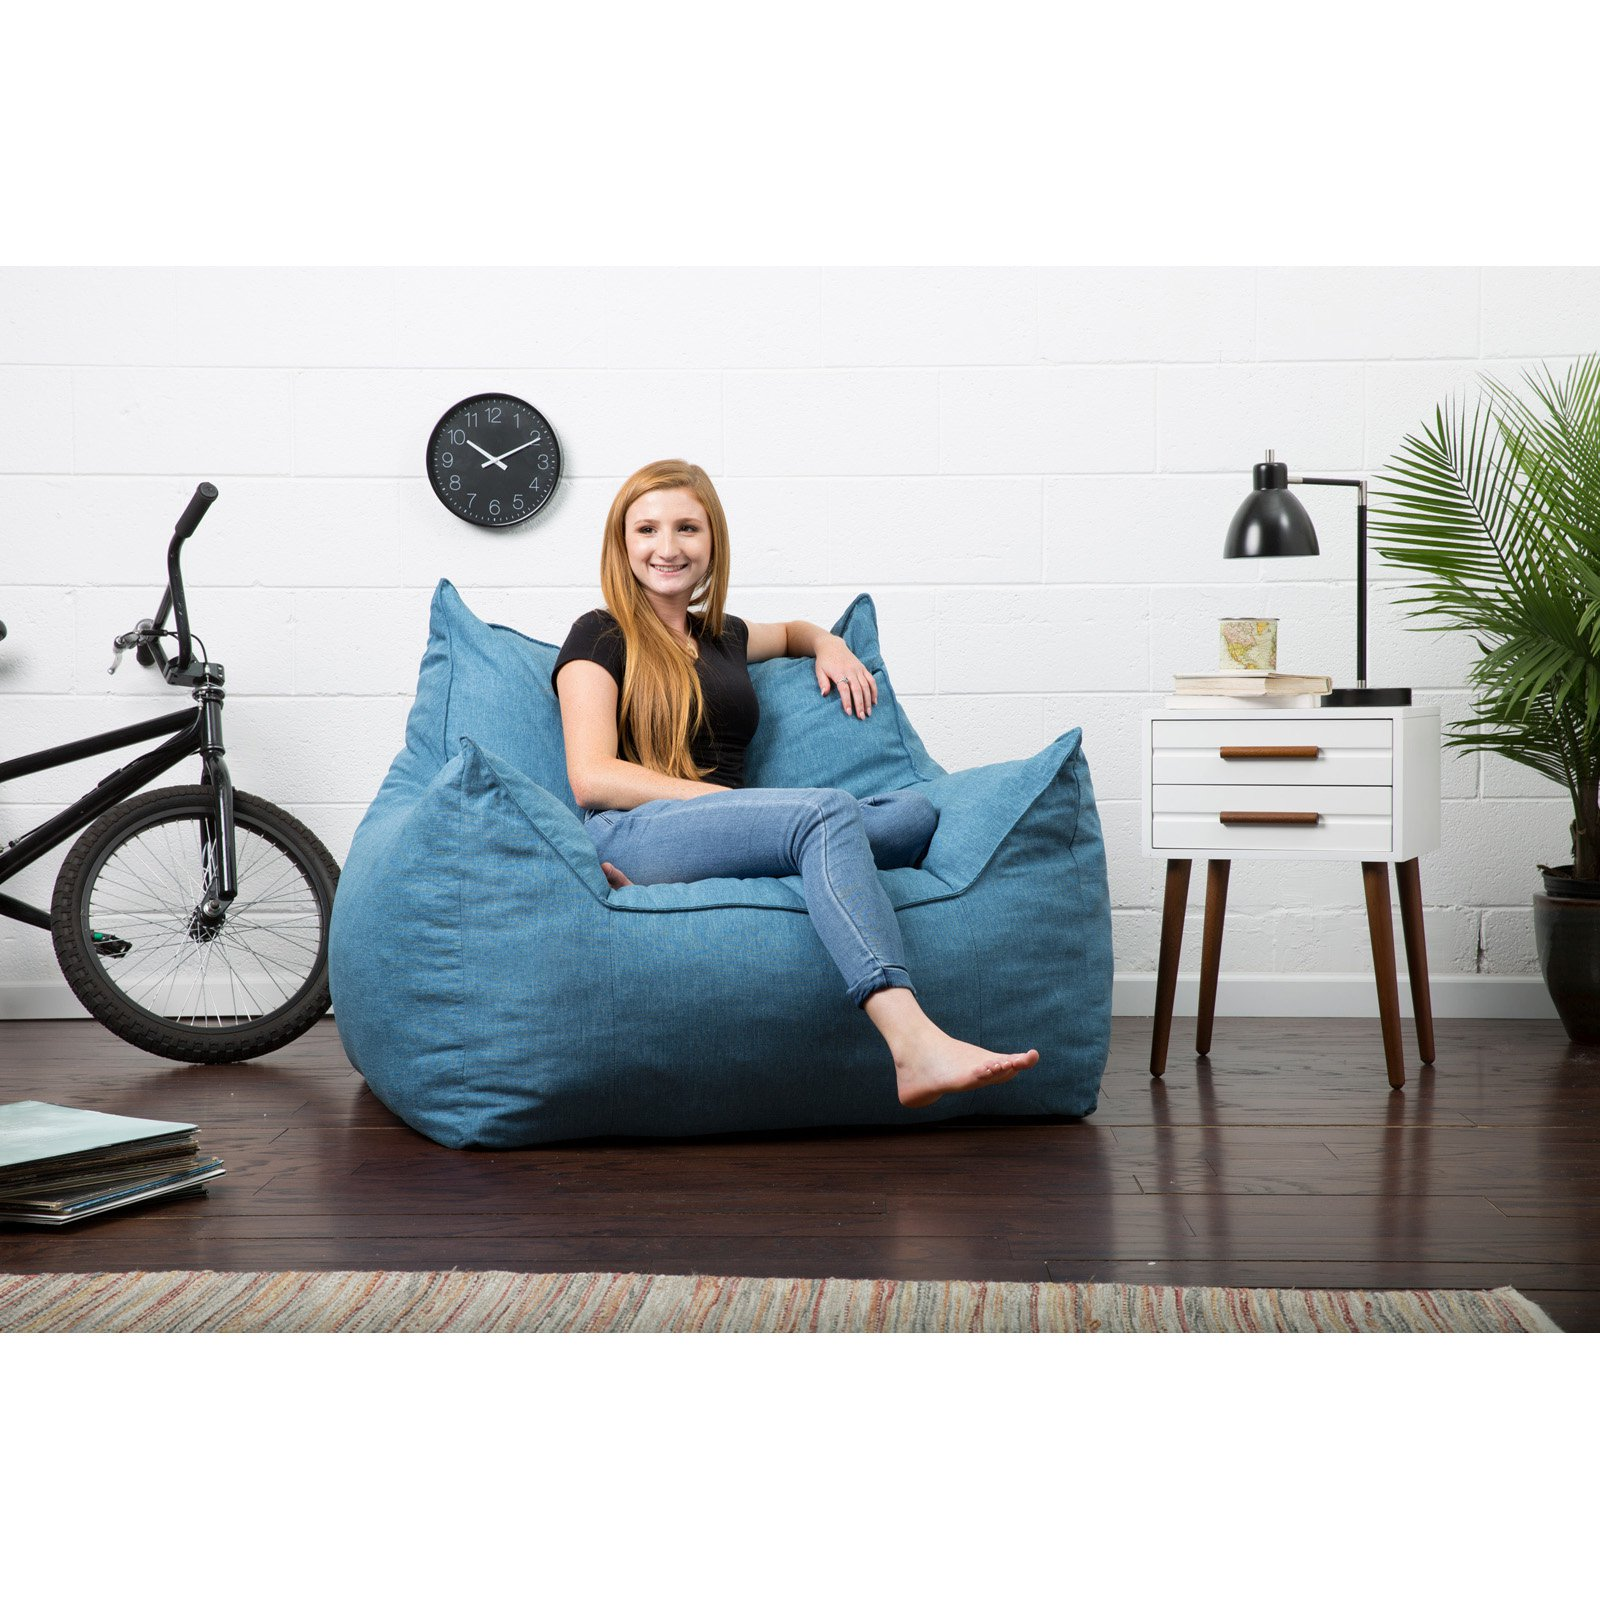 Surprising Lux By Big Joe Imperial Lounger Union Bean Bag Cjindustries Chair Design For Home Cjindustriesco